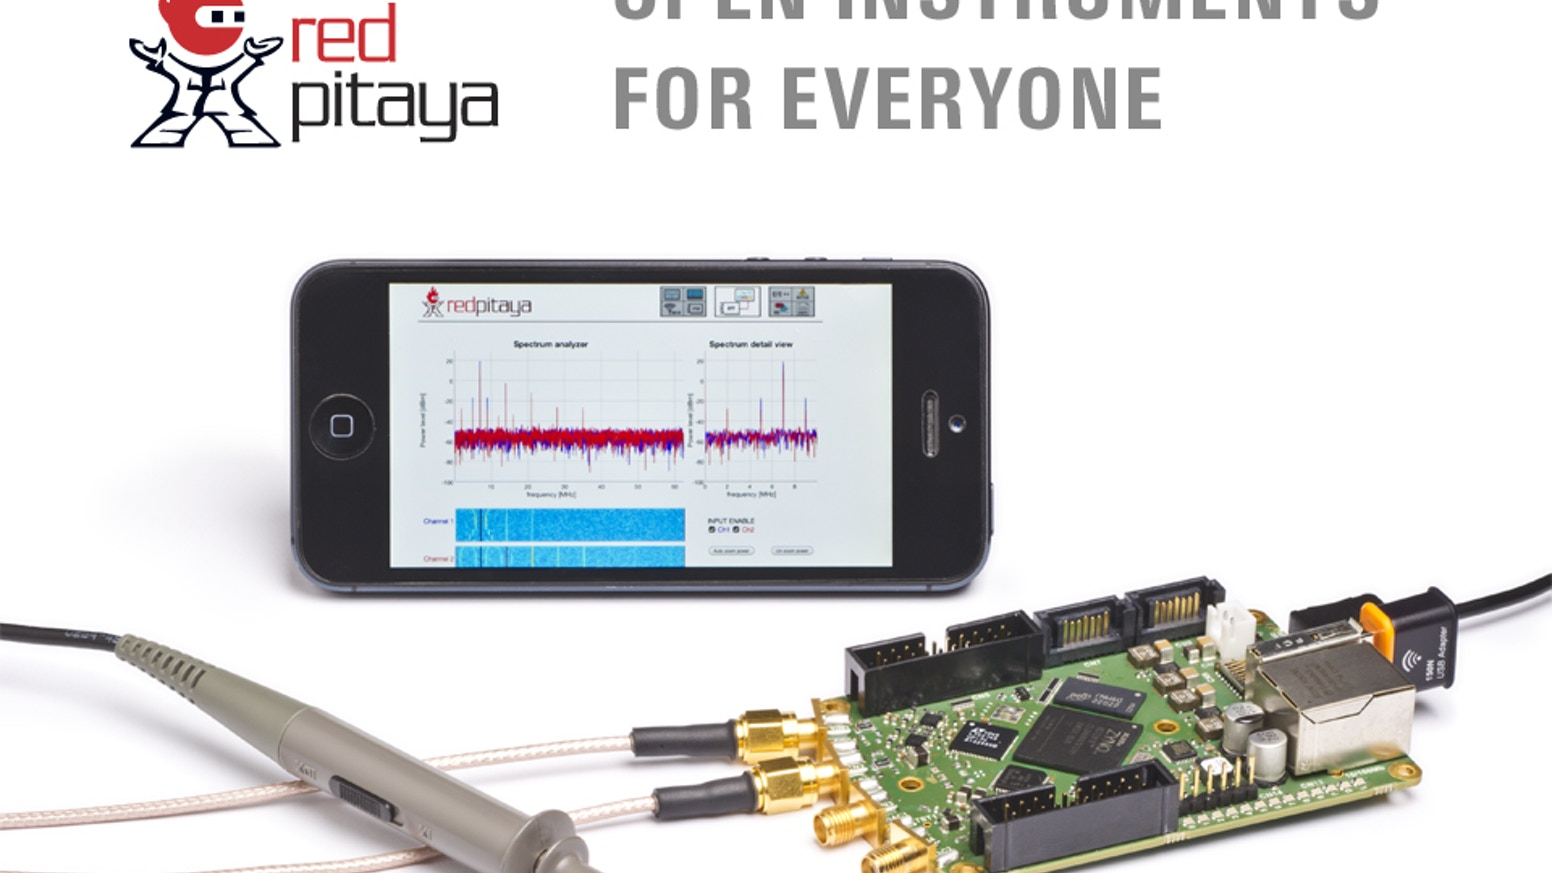 Red Pitaya: Open instruments for everyone by Red Pitaya — Kickstarter